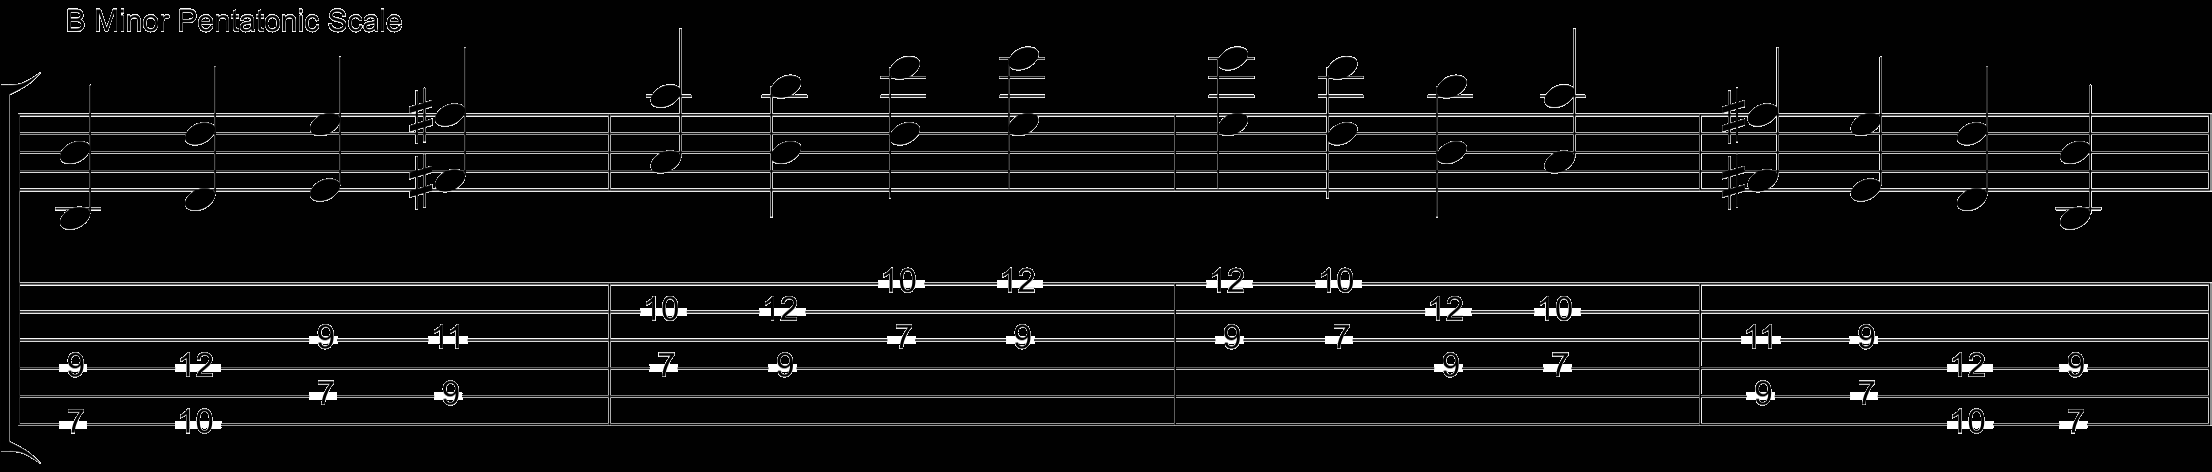 Minor pentatonic scale octave guitar shapes how to learn the guitar fretboard notes